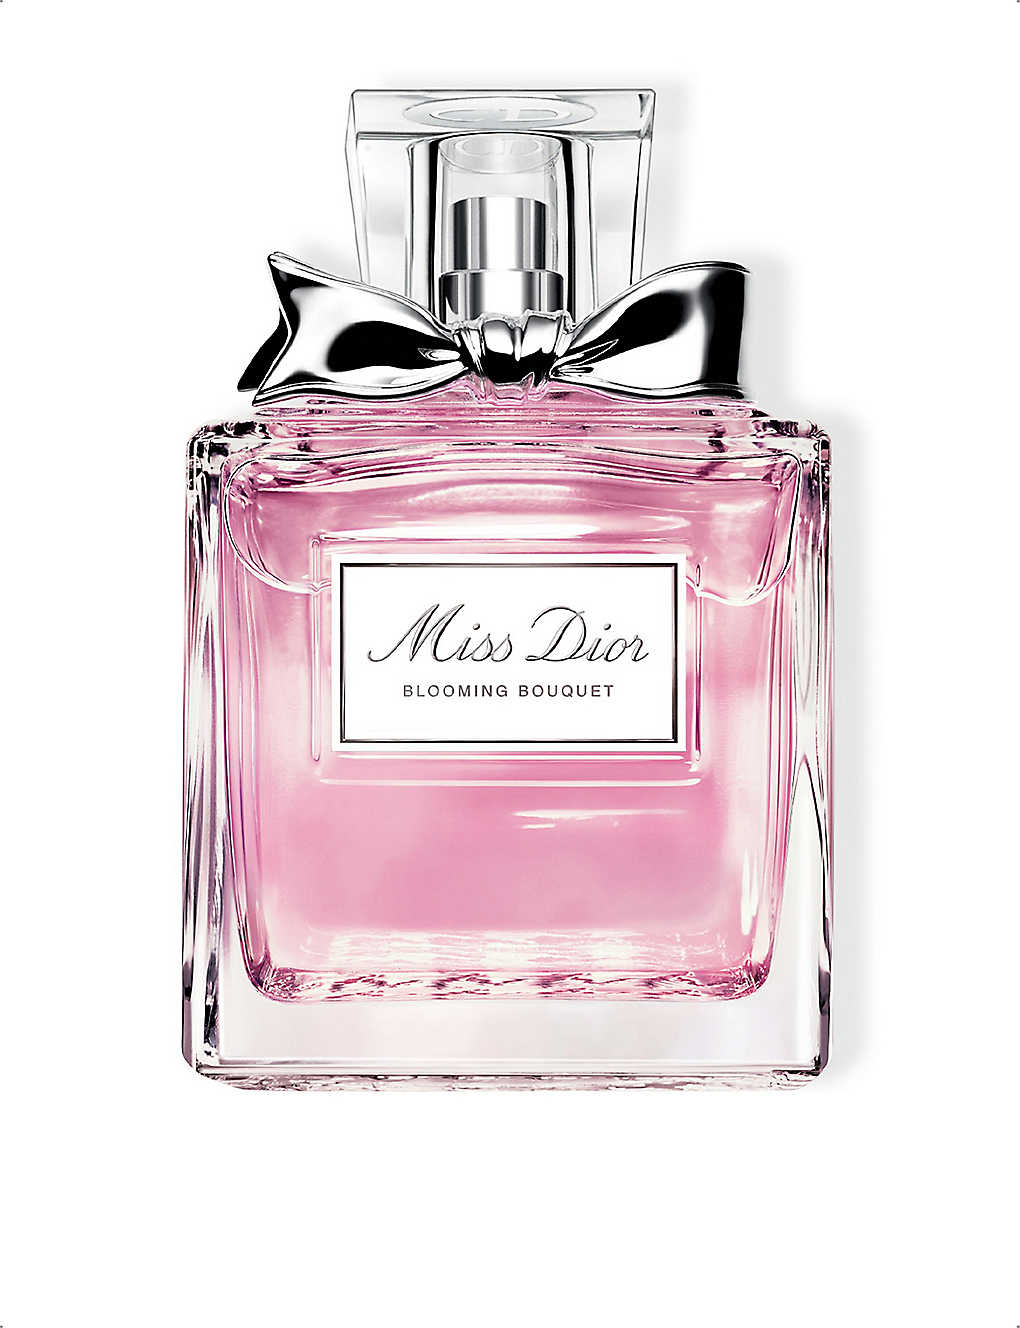 DIOR: Miss Dior Blooming Bouquet eau de toilette 100ml